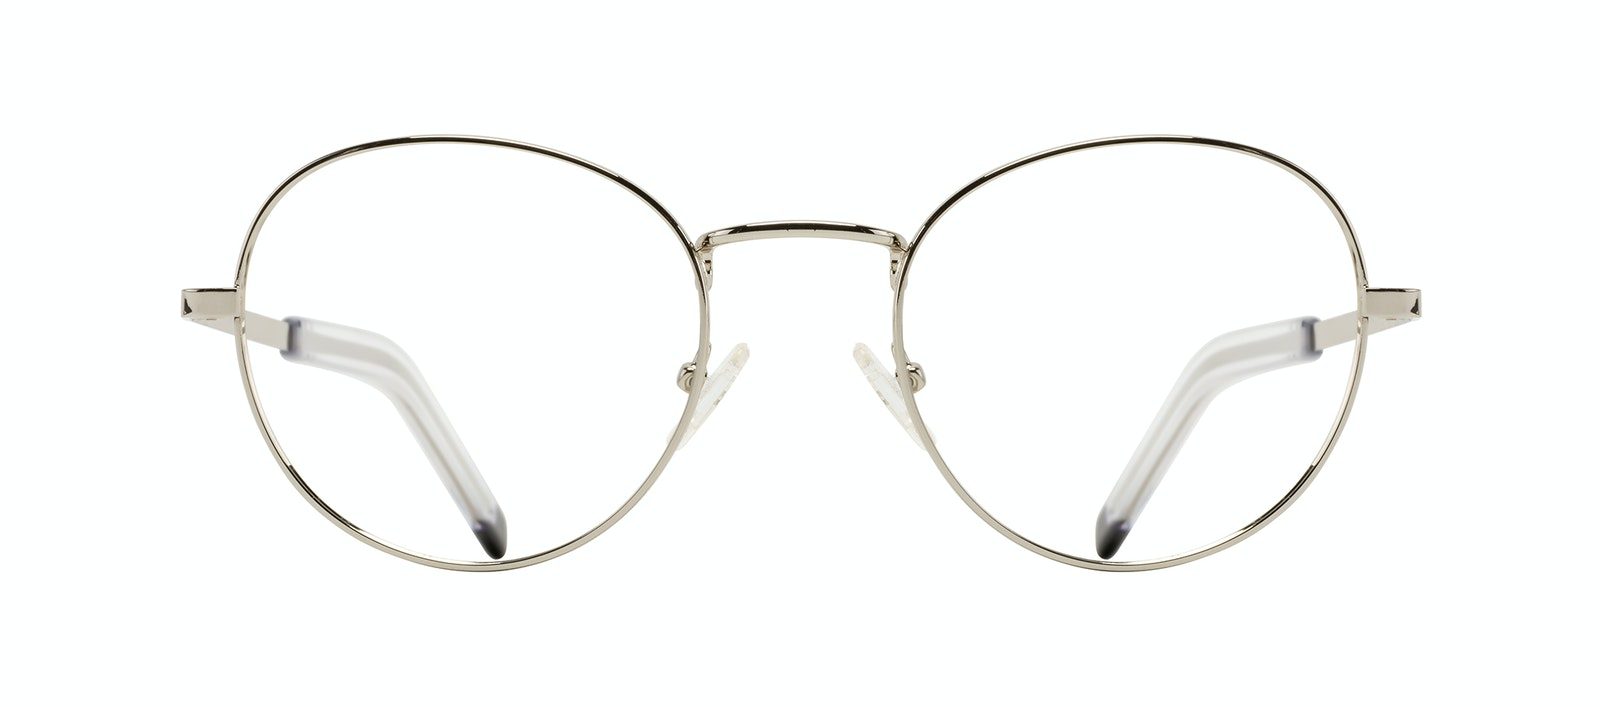 Affordable Fashion Glasses Round Eyeglasses Men Lean XL Silver Front